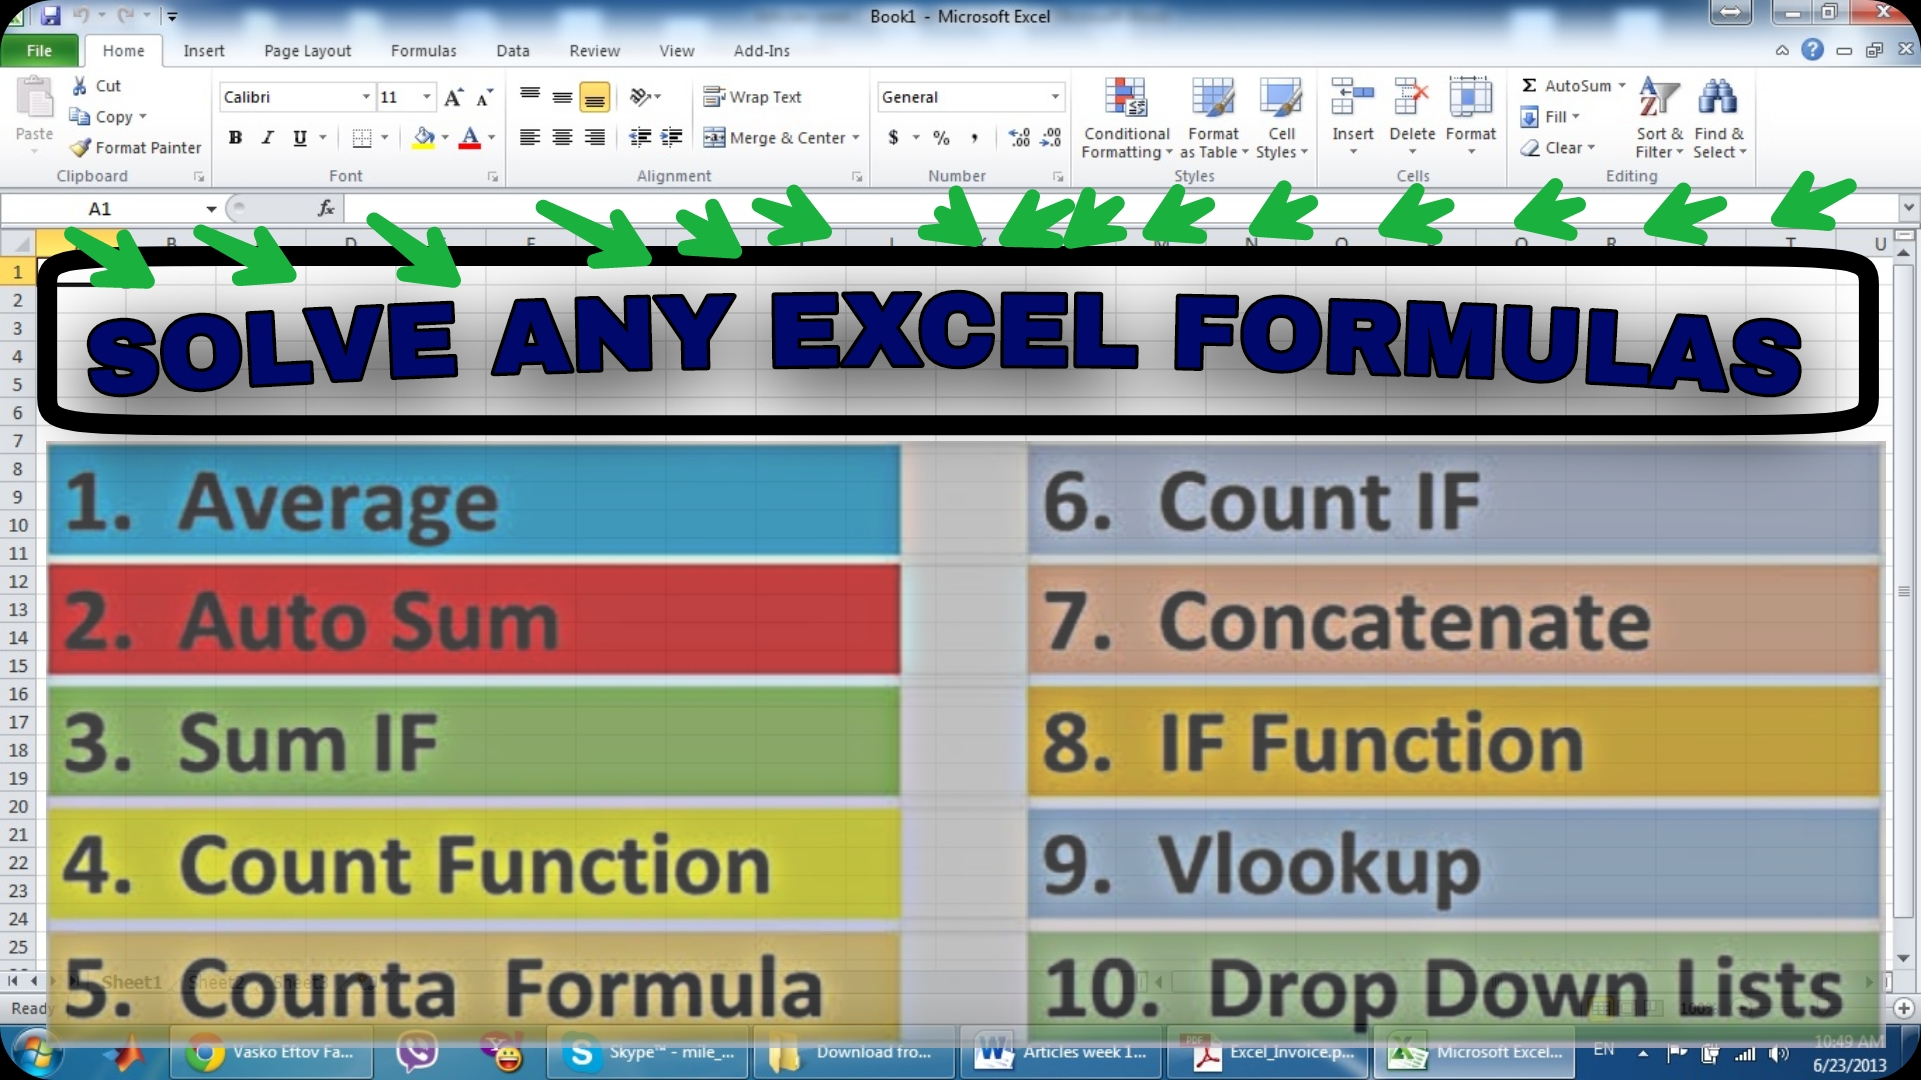 I can solve any excel formulas immediately